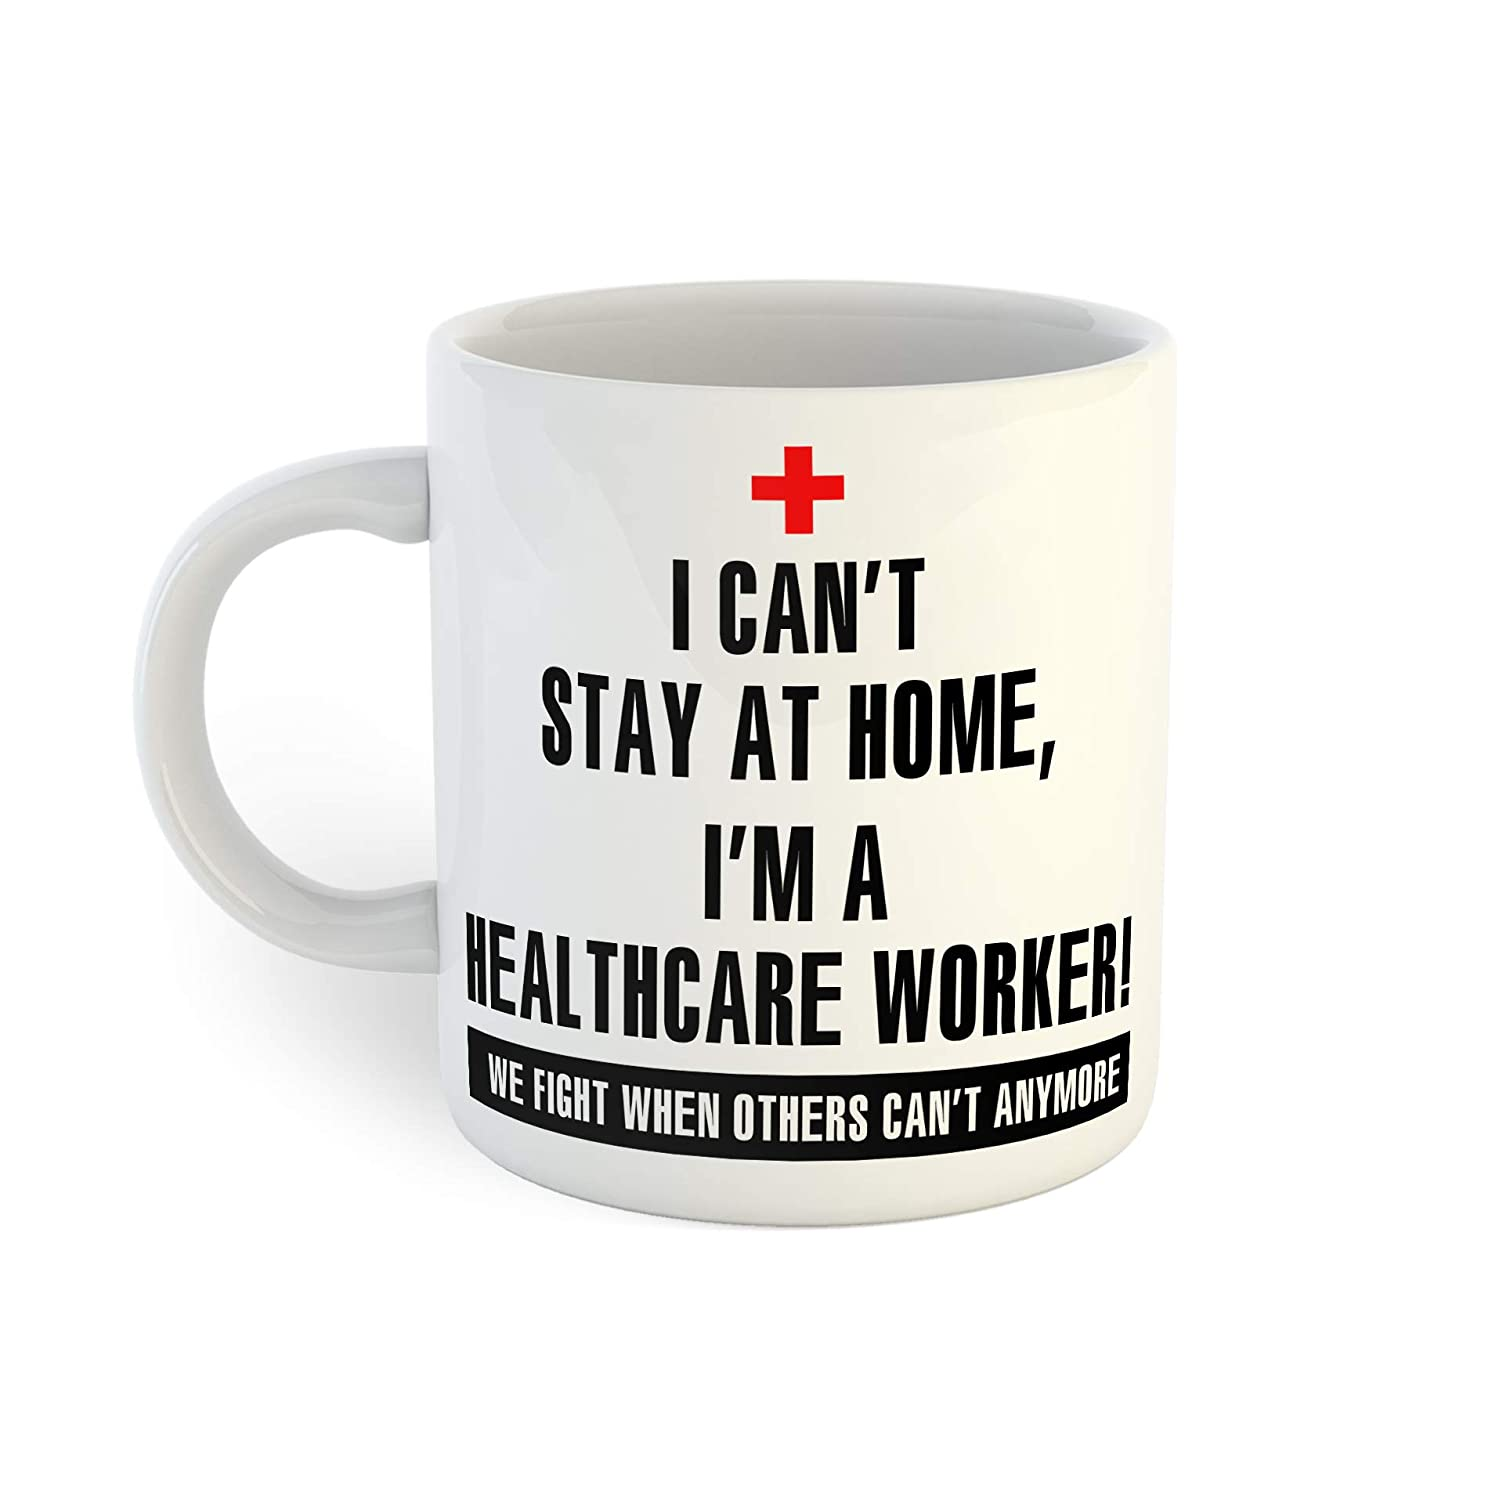 Not Quarantined Healthcare Safety famous and trust Worker Coffee Appreciation Mug